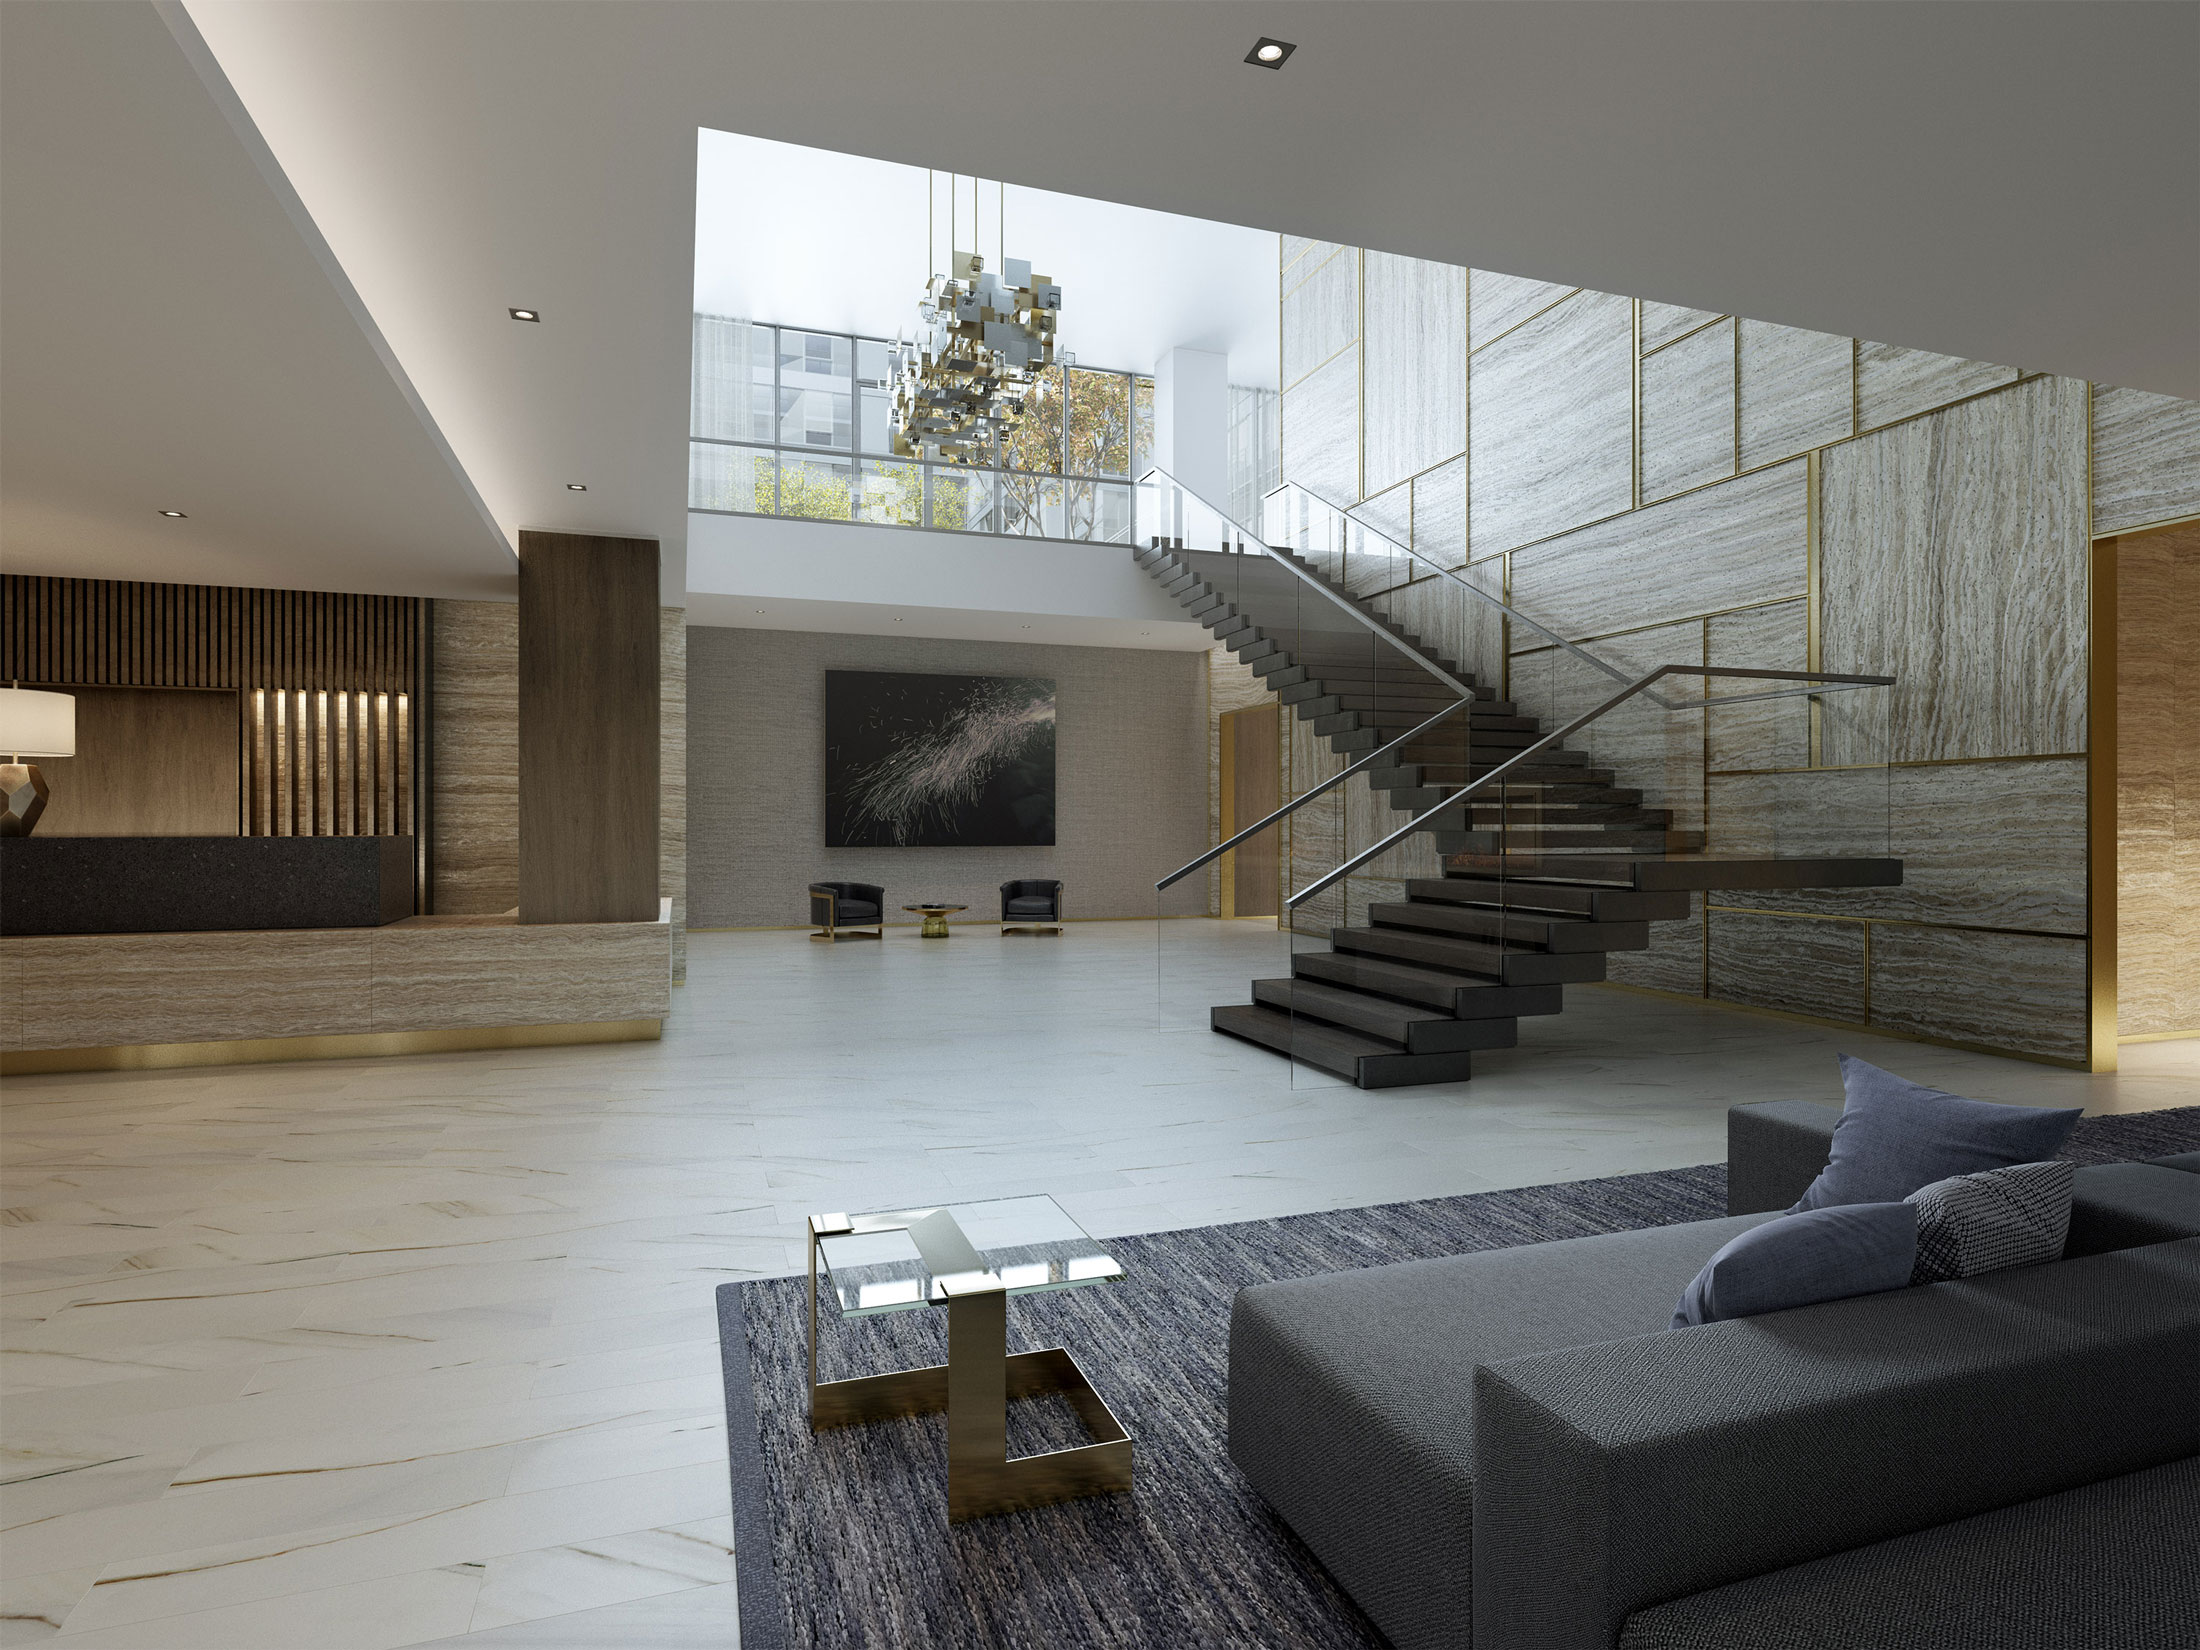 Architectural Rendering of the interior of the One Hill South project located in Washington, DC